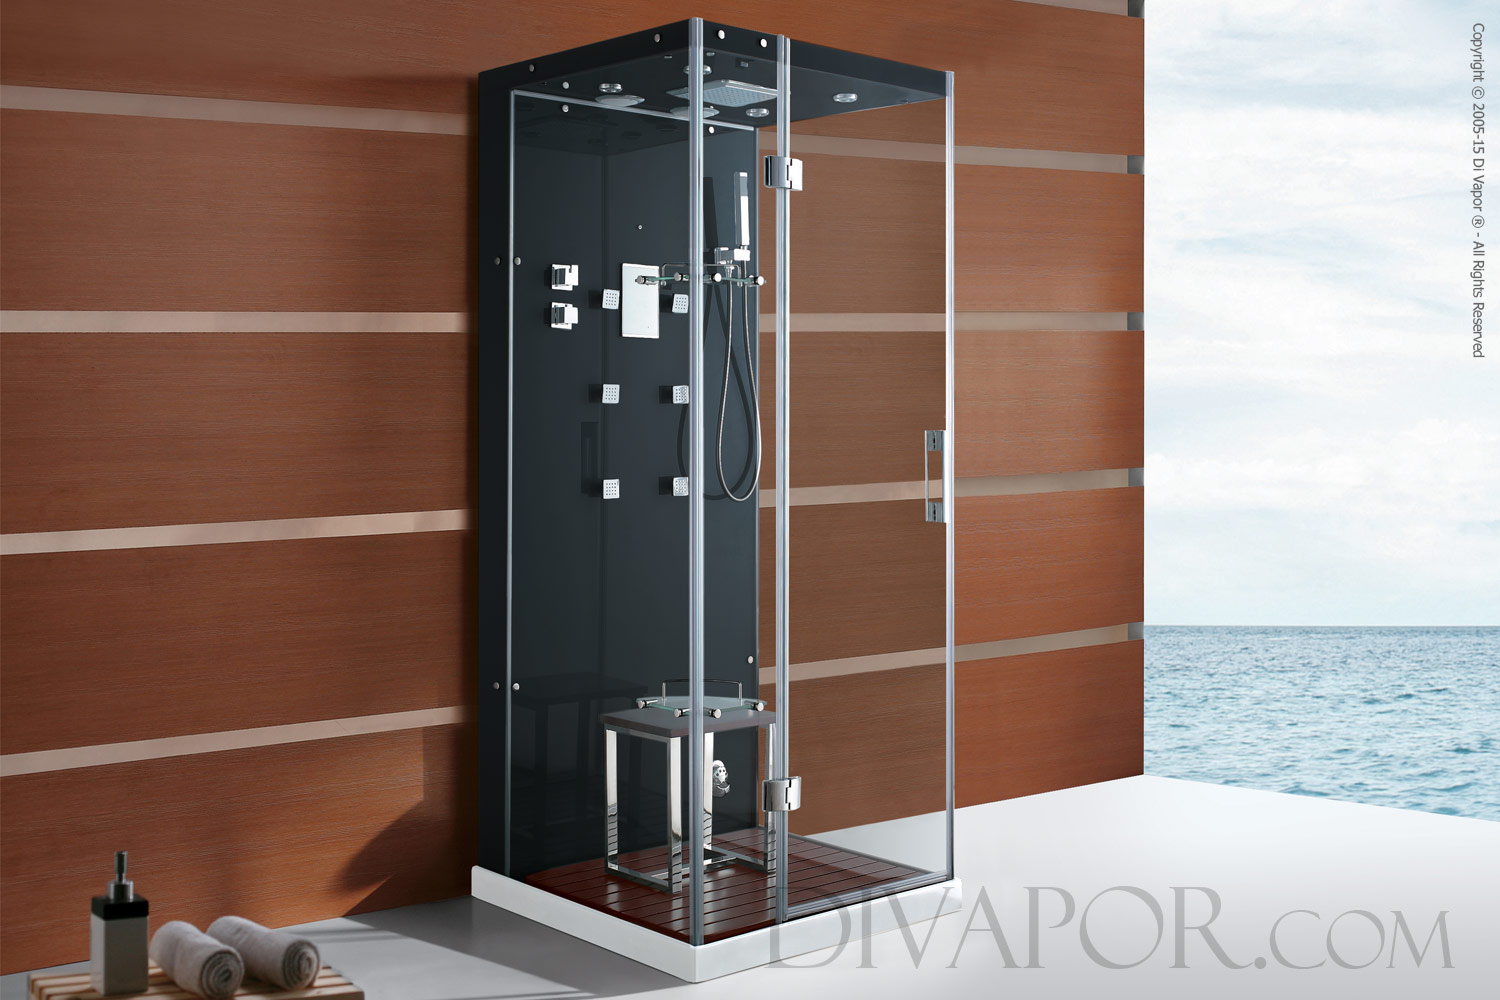 Steam Shower Enclosure - The Modena (S-DV6023B)